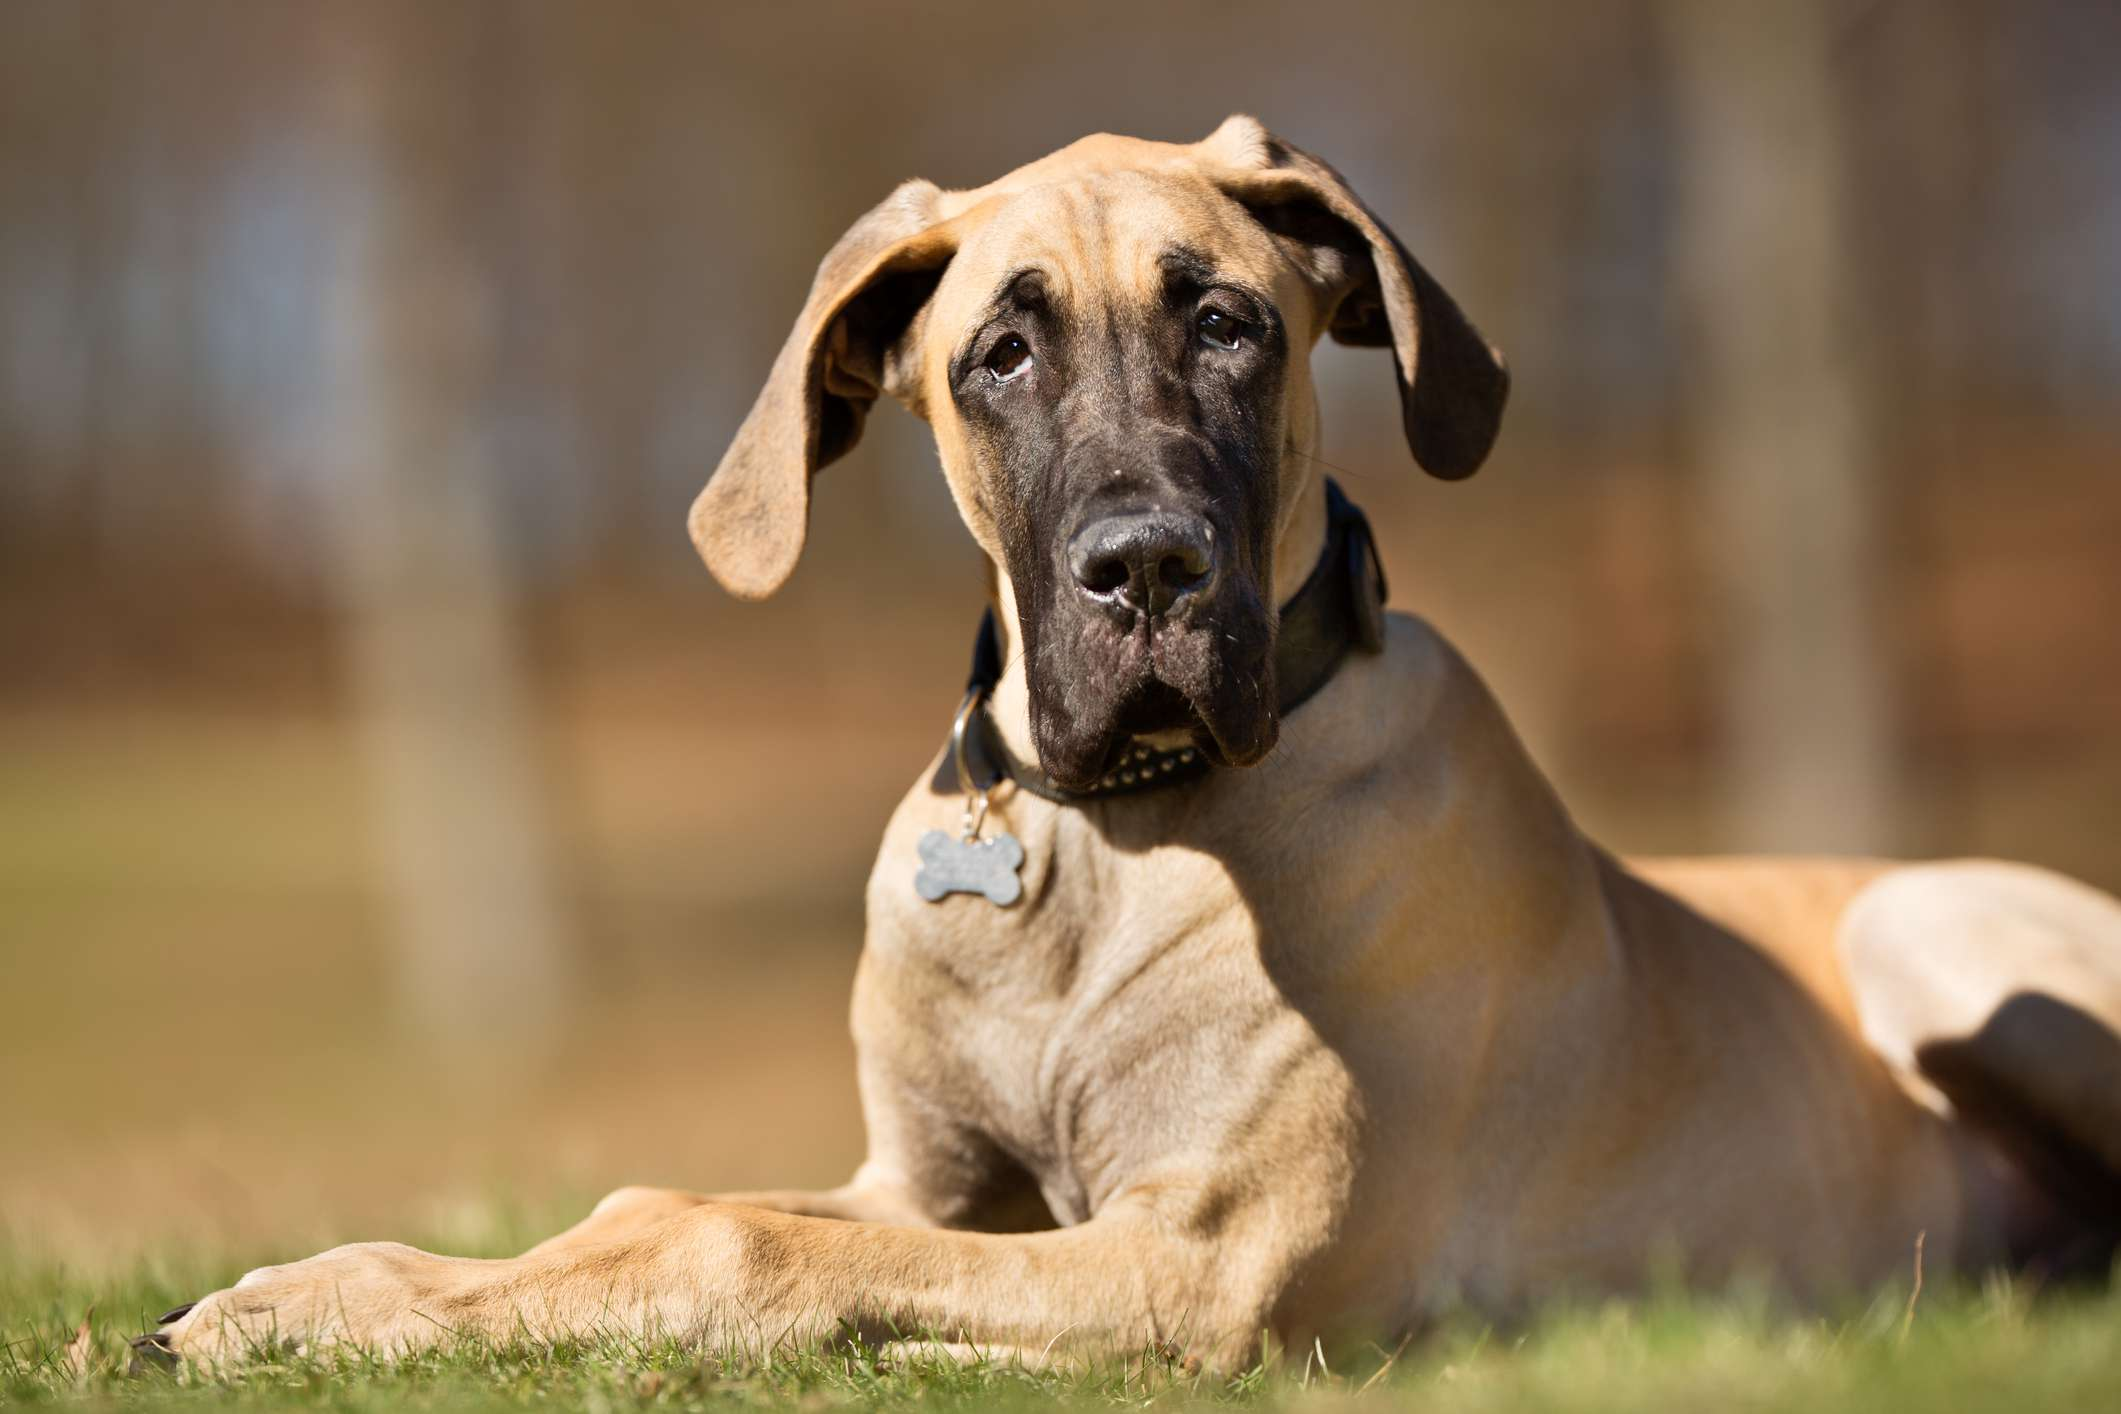 Fawn Great Dane lying in the grass